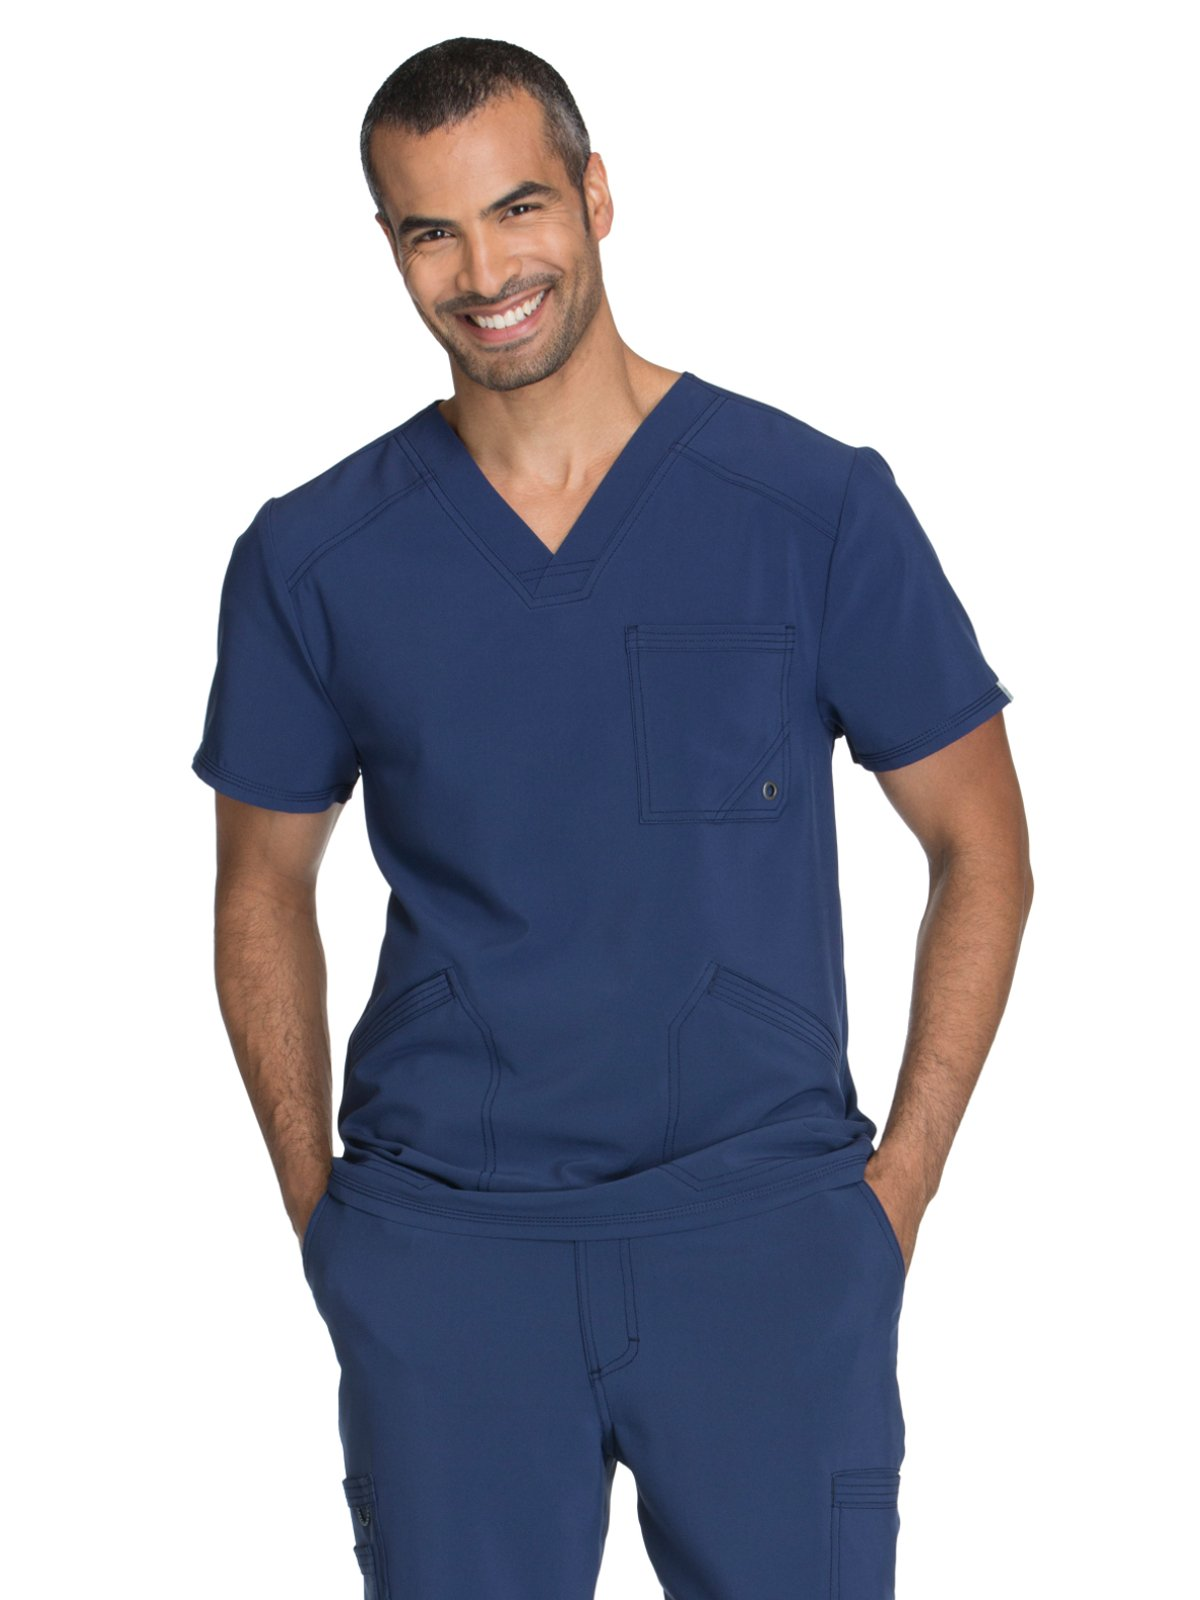 Cherokee Infinity Men's V-Neck Solid Scrub Top Medium Navy